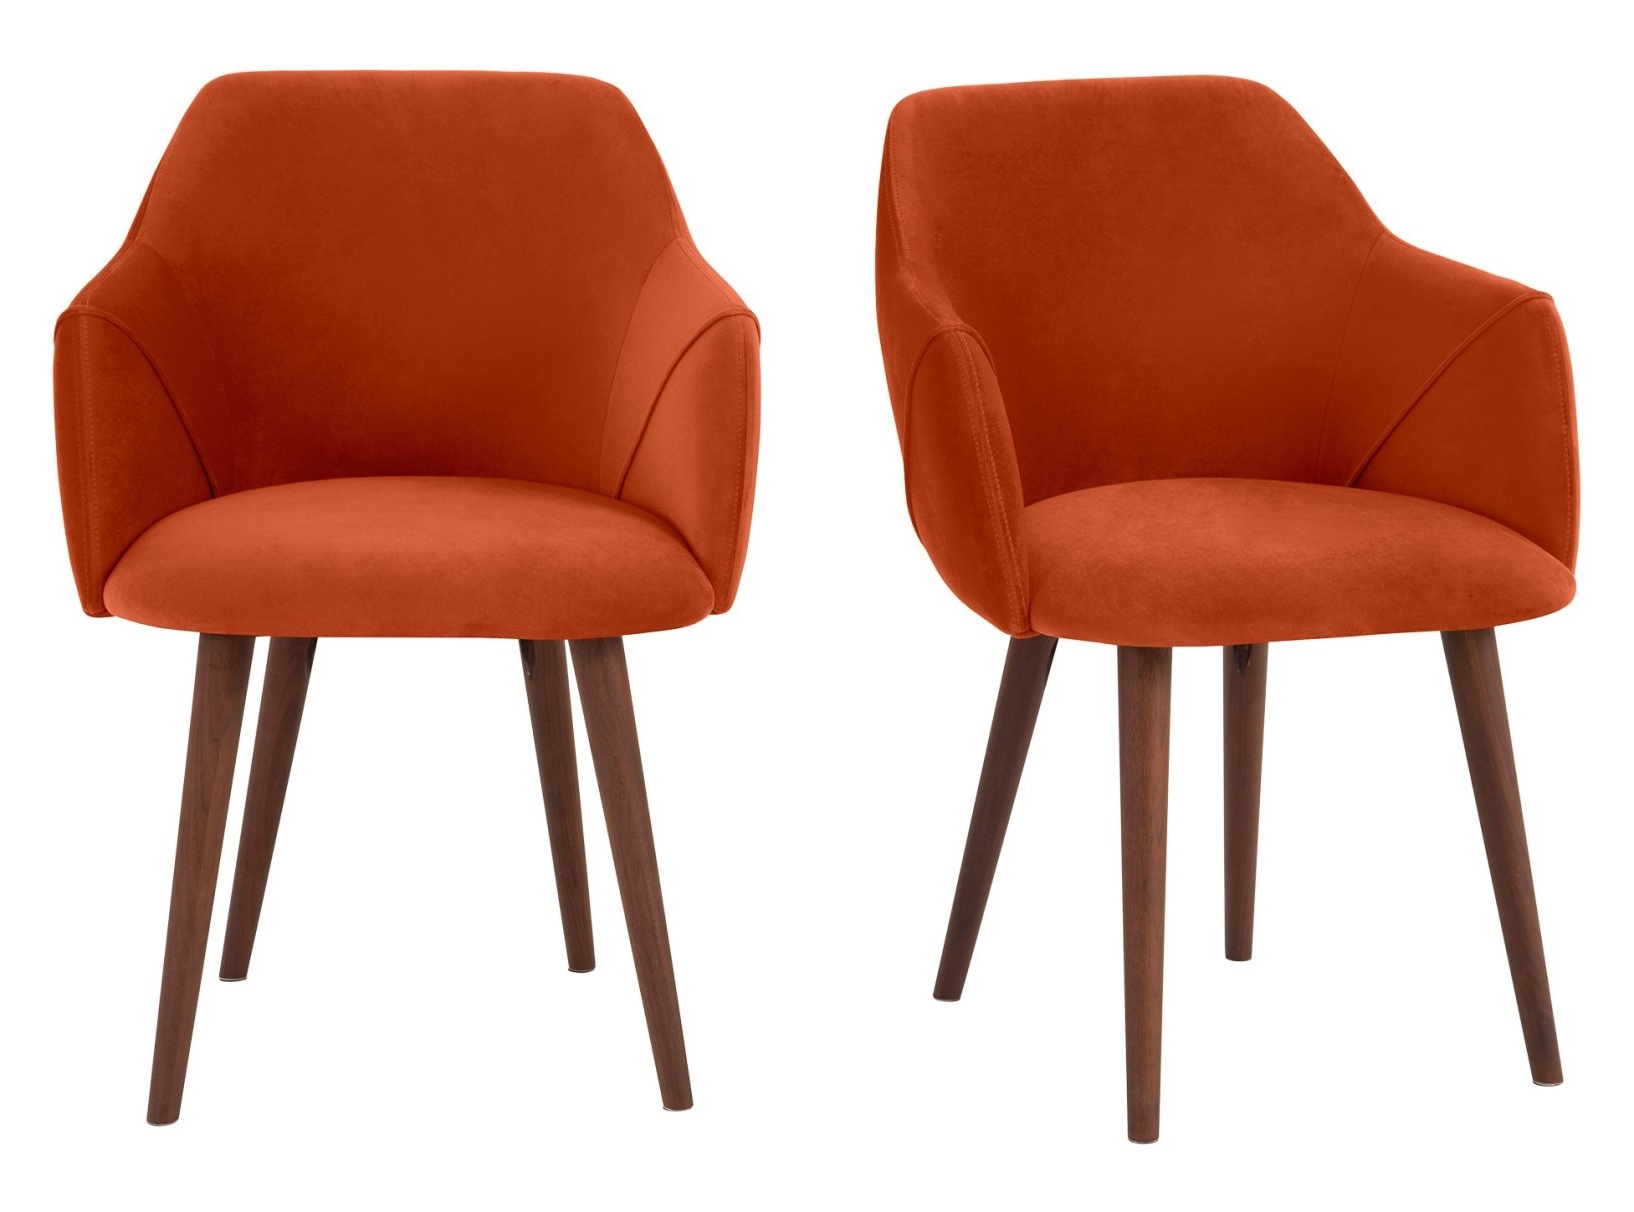 Well Known Orange Chaises Throughout Chaise Orange – Comparez Les Prix Avec Twenga (View 14 of 15)